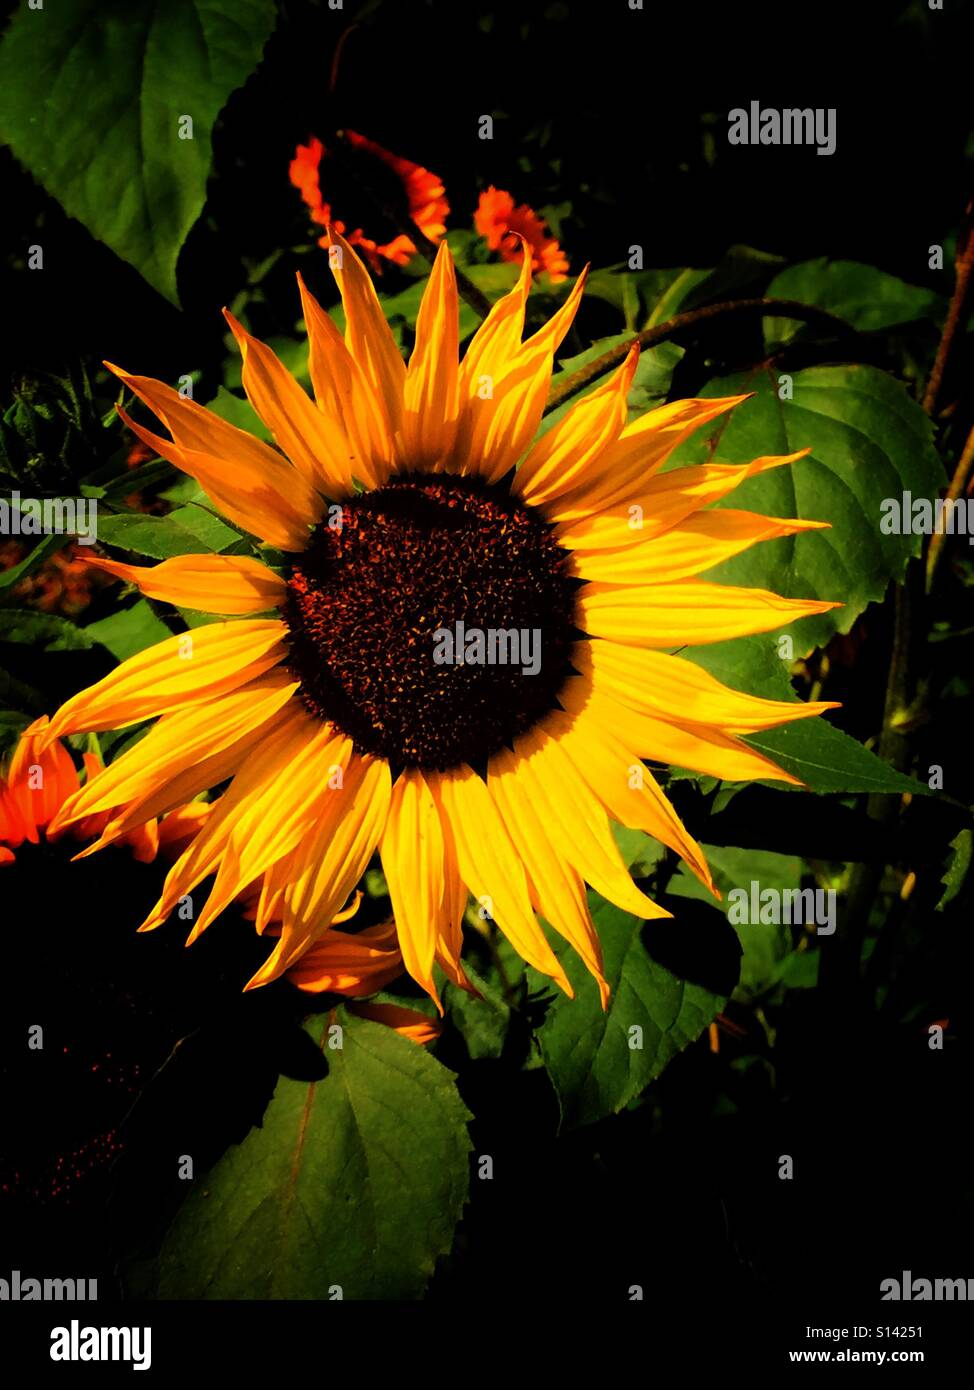 Sunflower patch - Stock Image